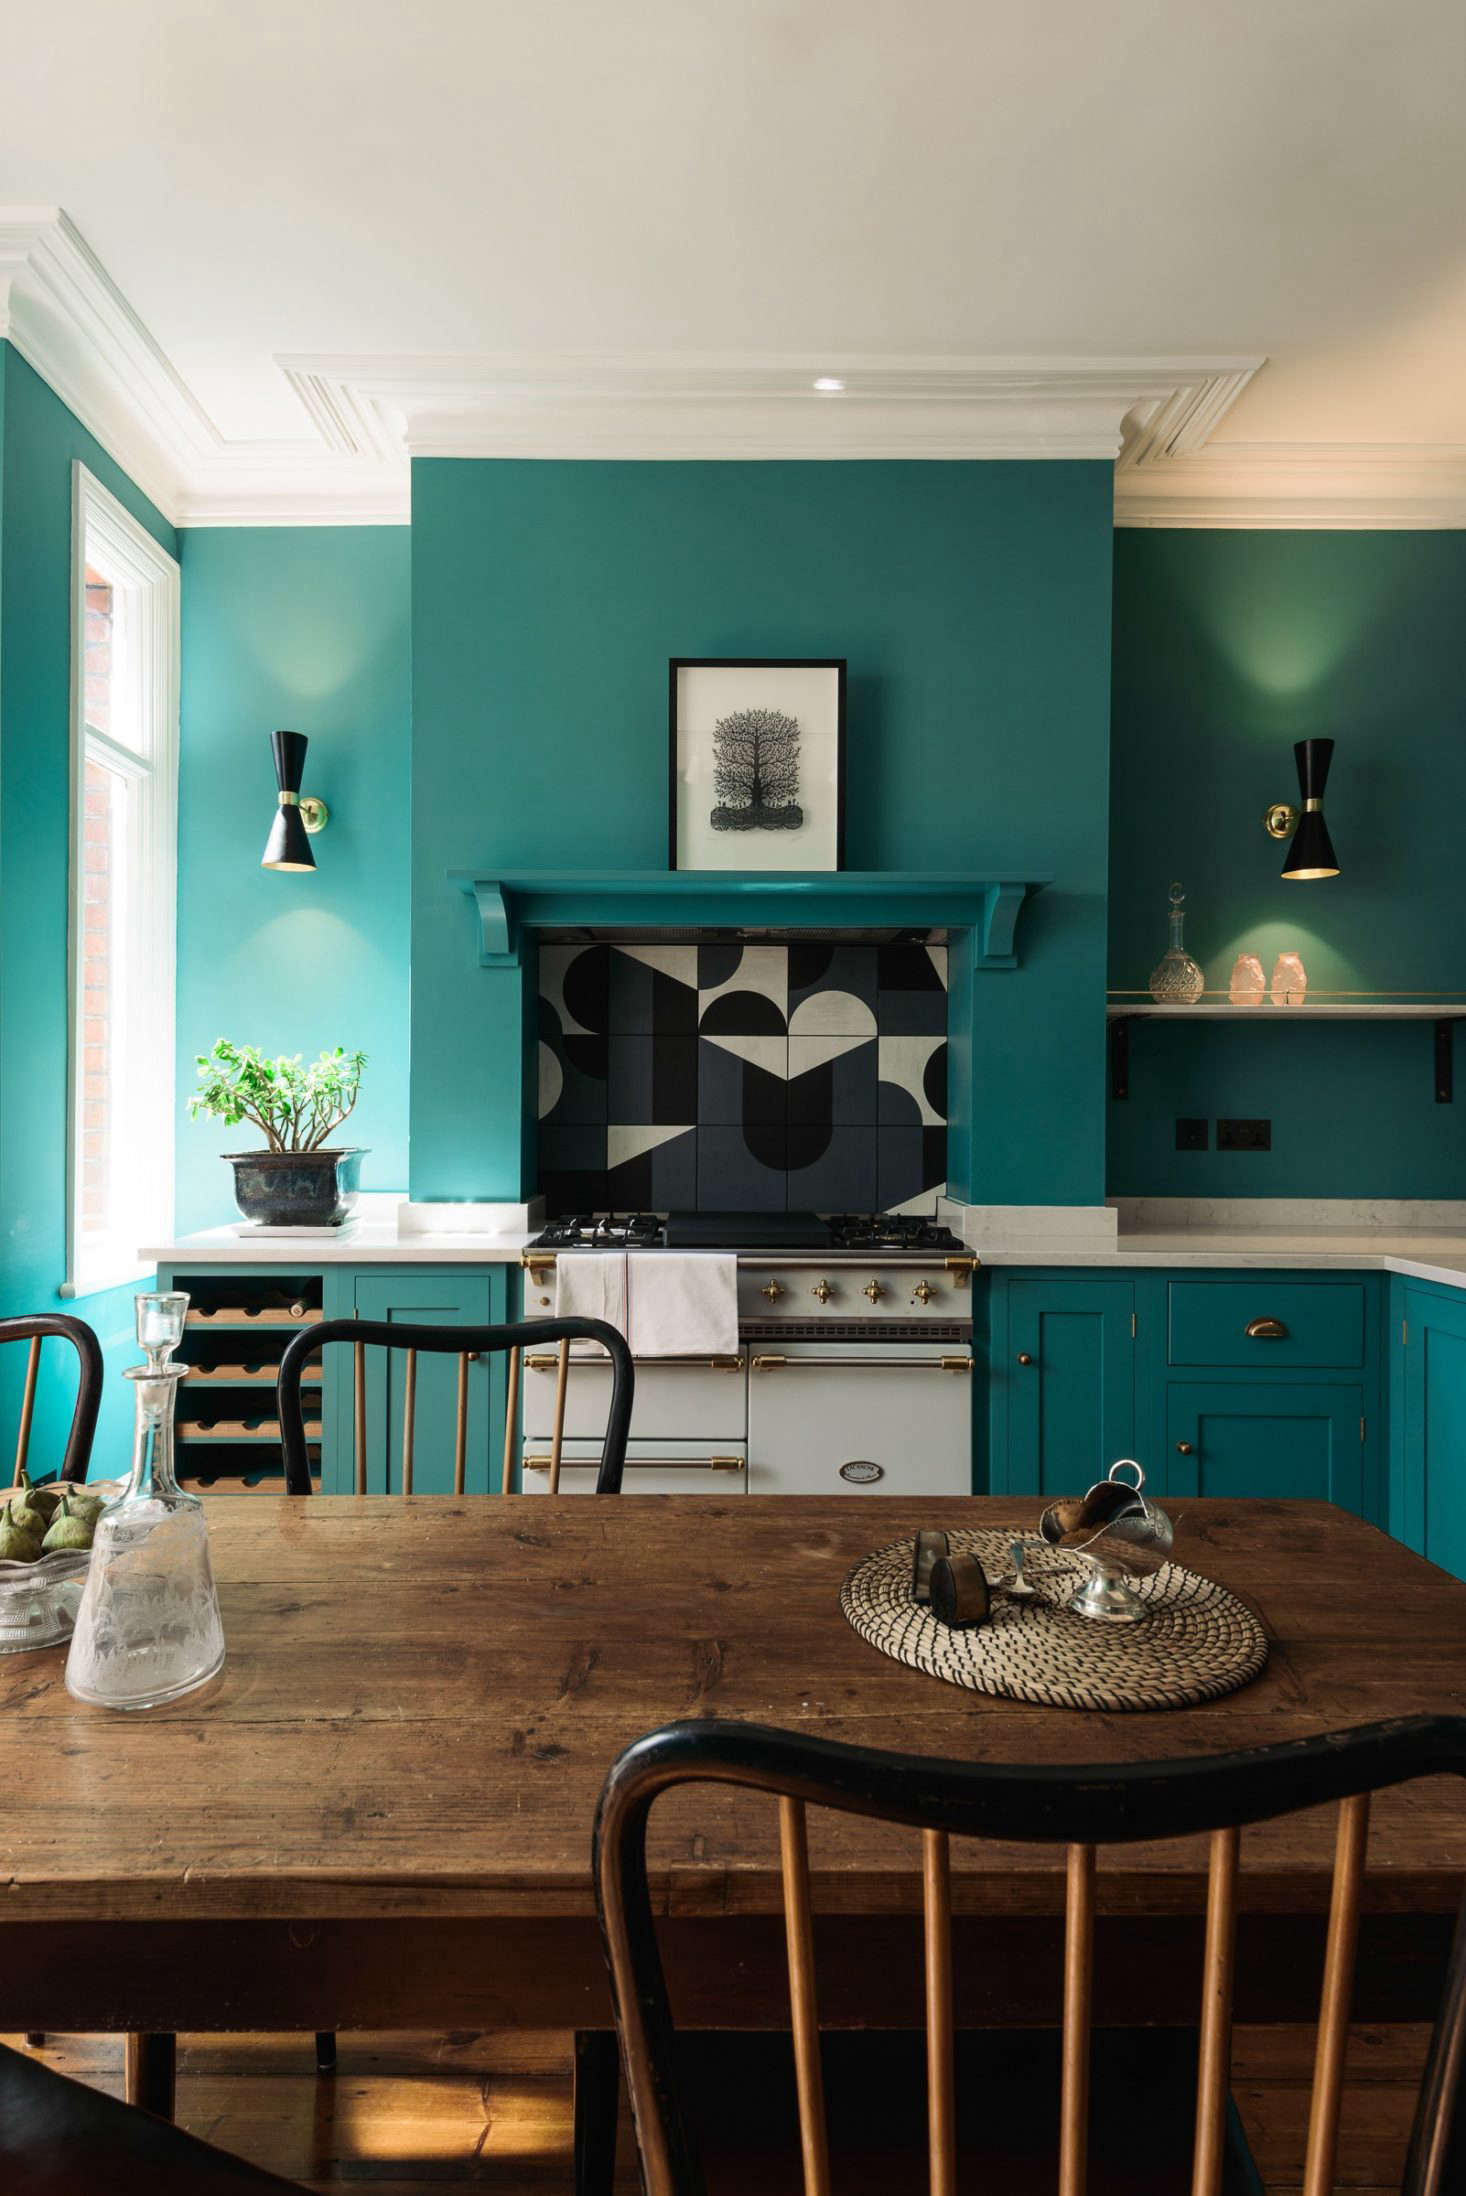 Shaker-style deVol kitchen in London with statement tiled backsplash